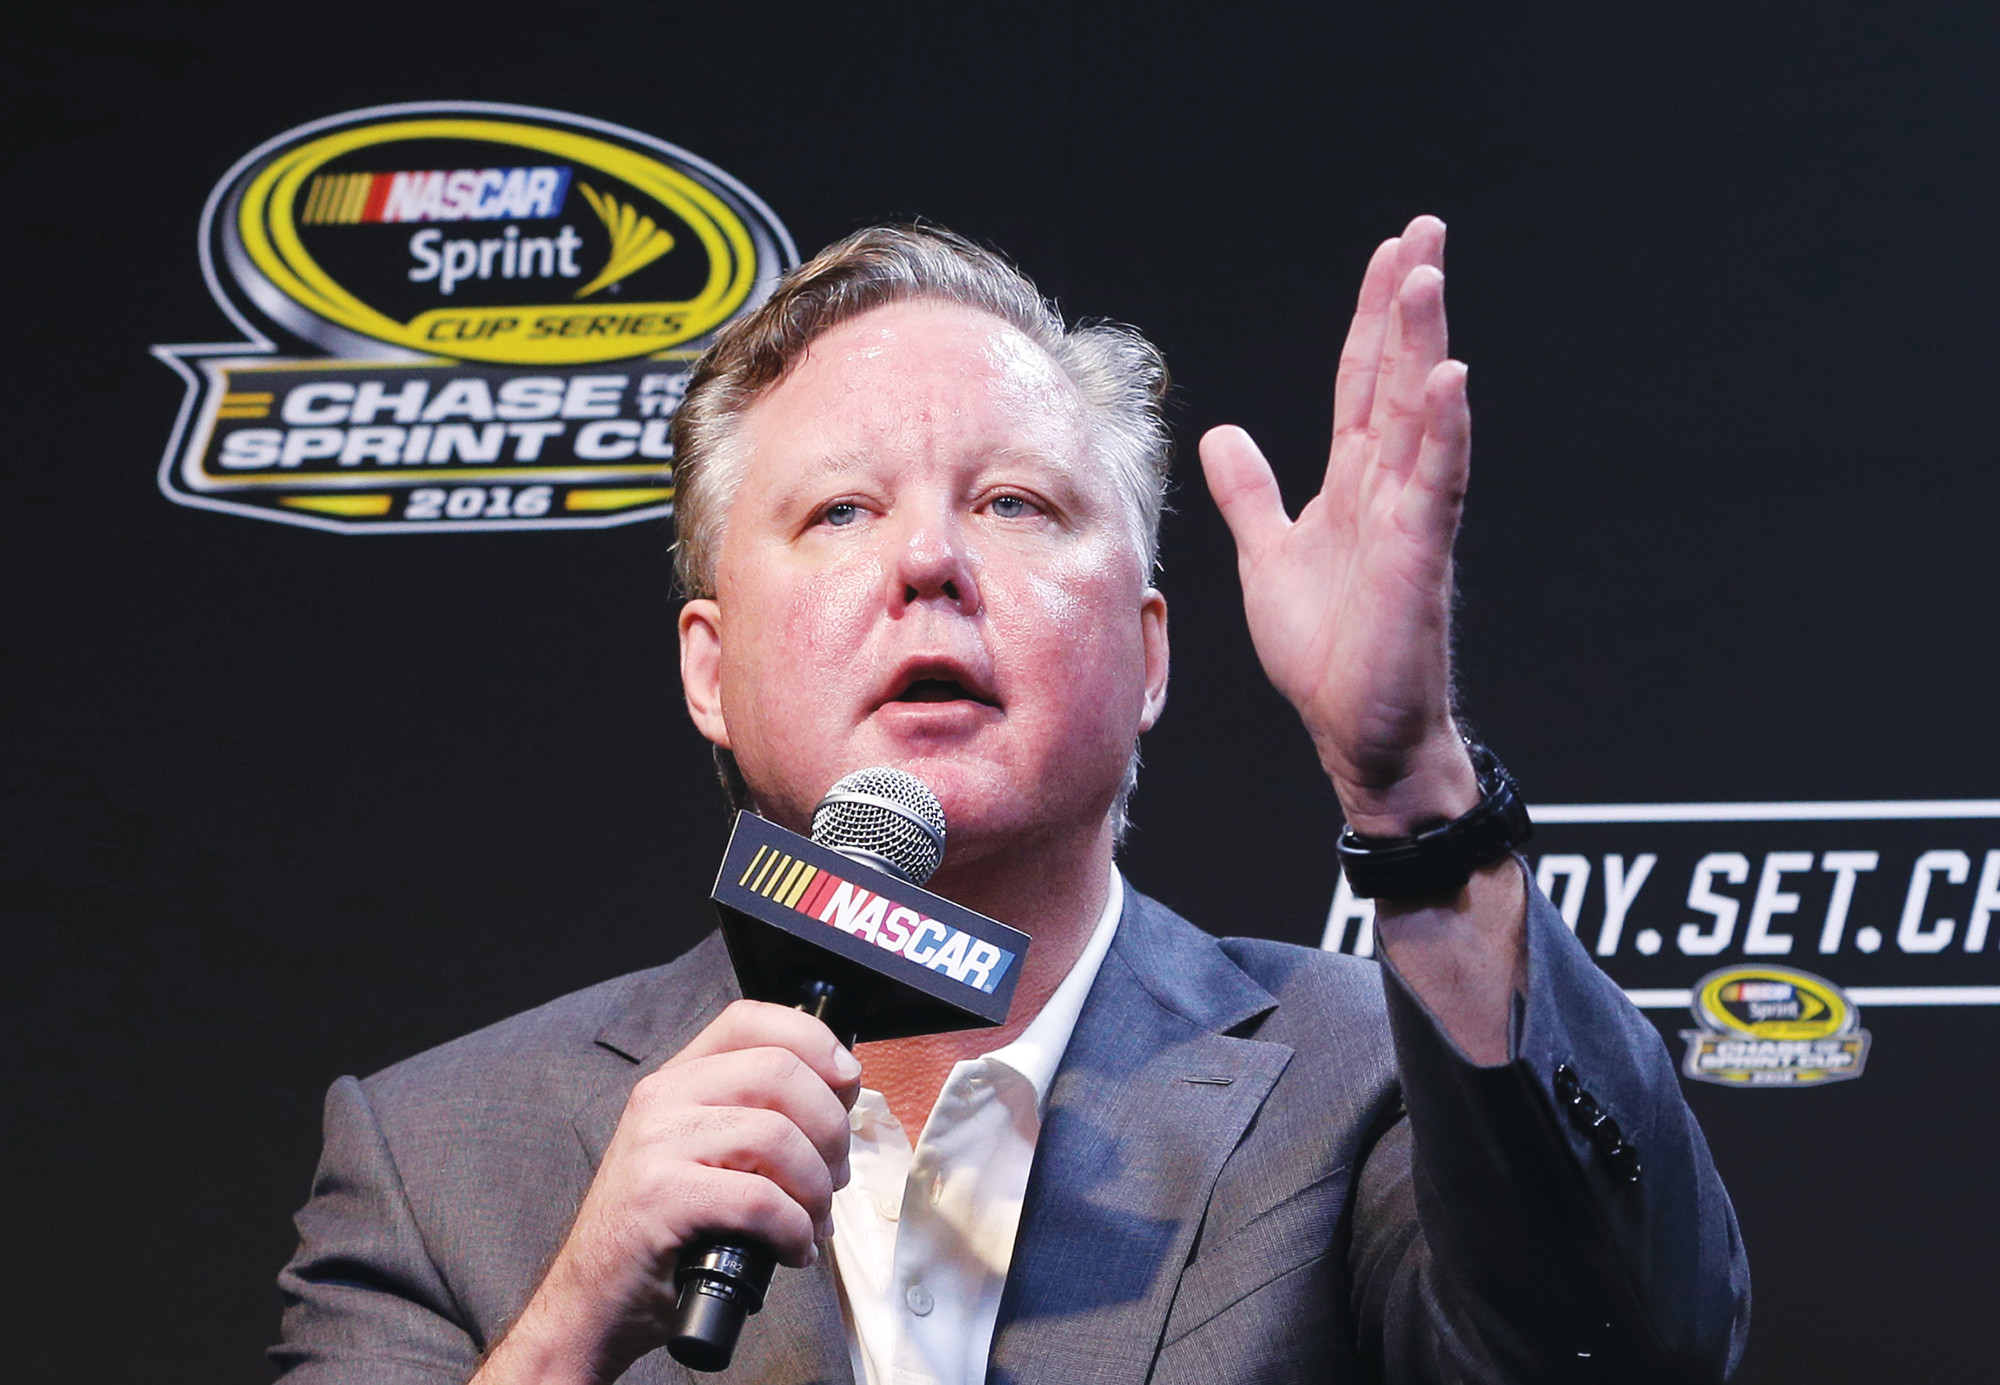 NASCAR CEO and Chairman Brian France is taking an indefinite leave of absence after charges of driving while intoxicated and criminal possession of oxycodone.